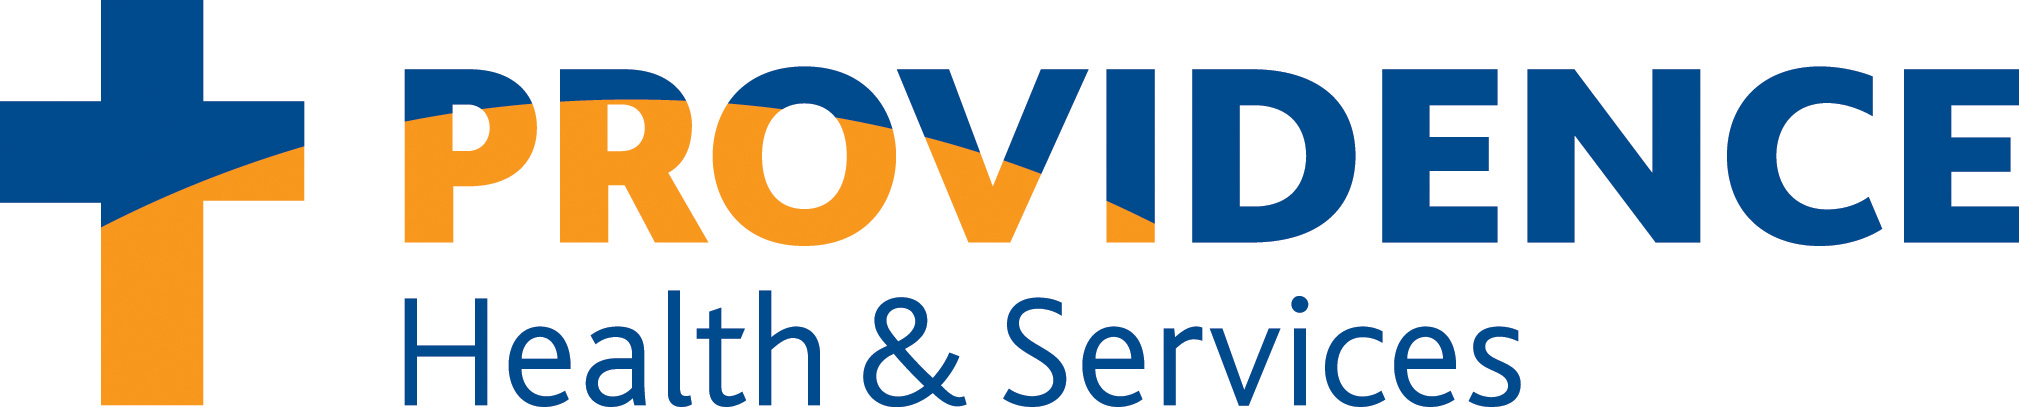 B. Providence Health & Services